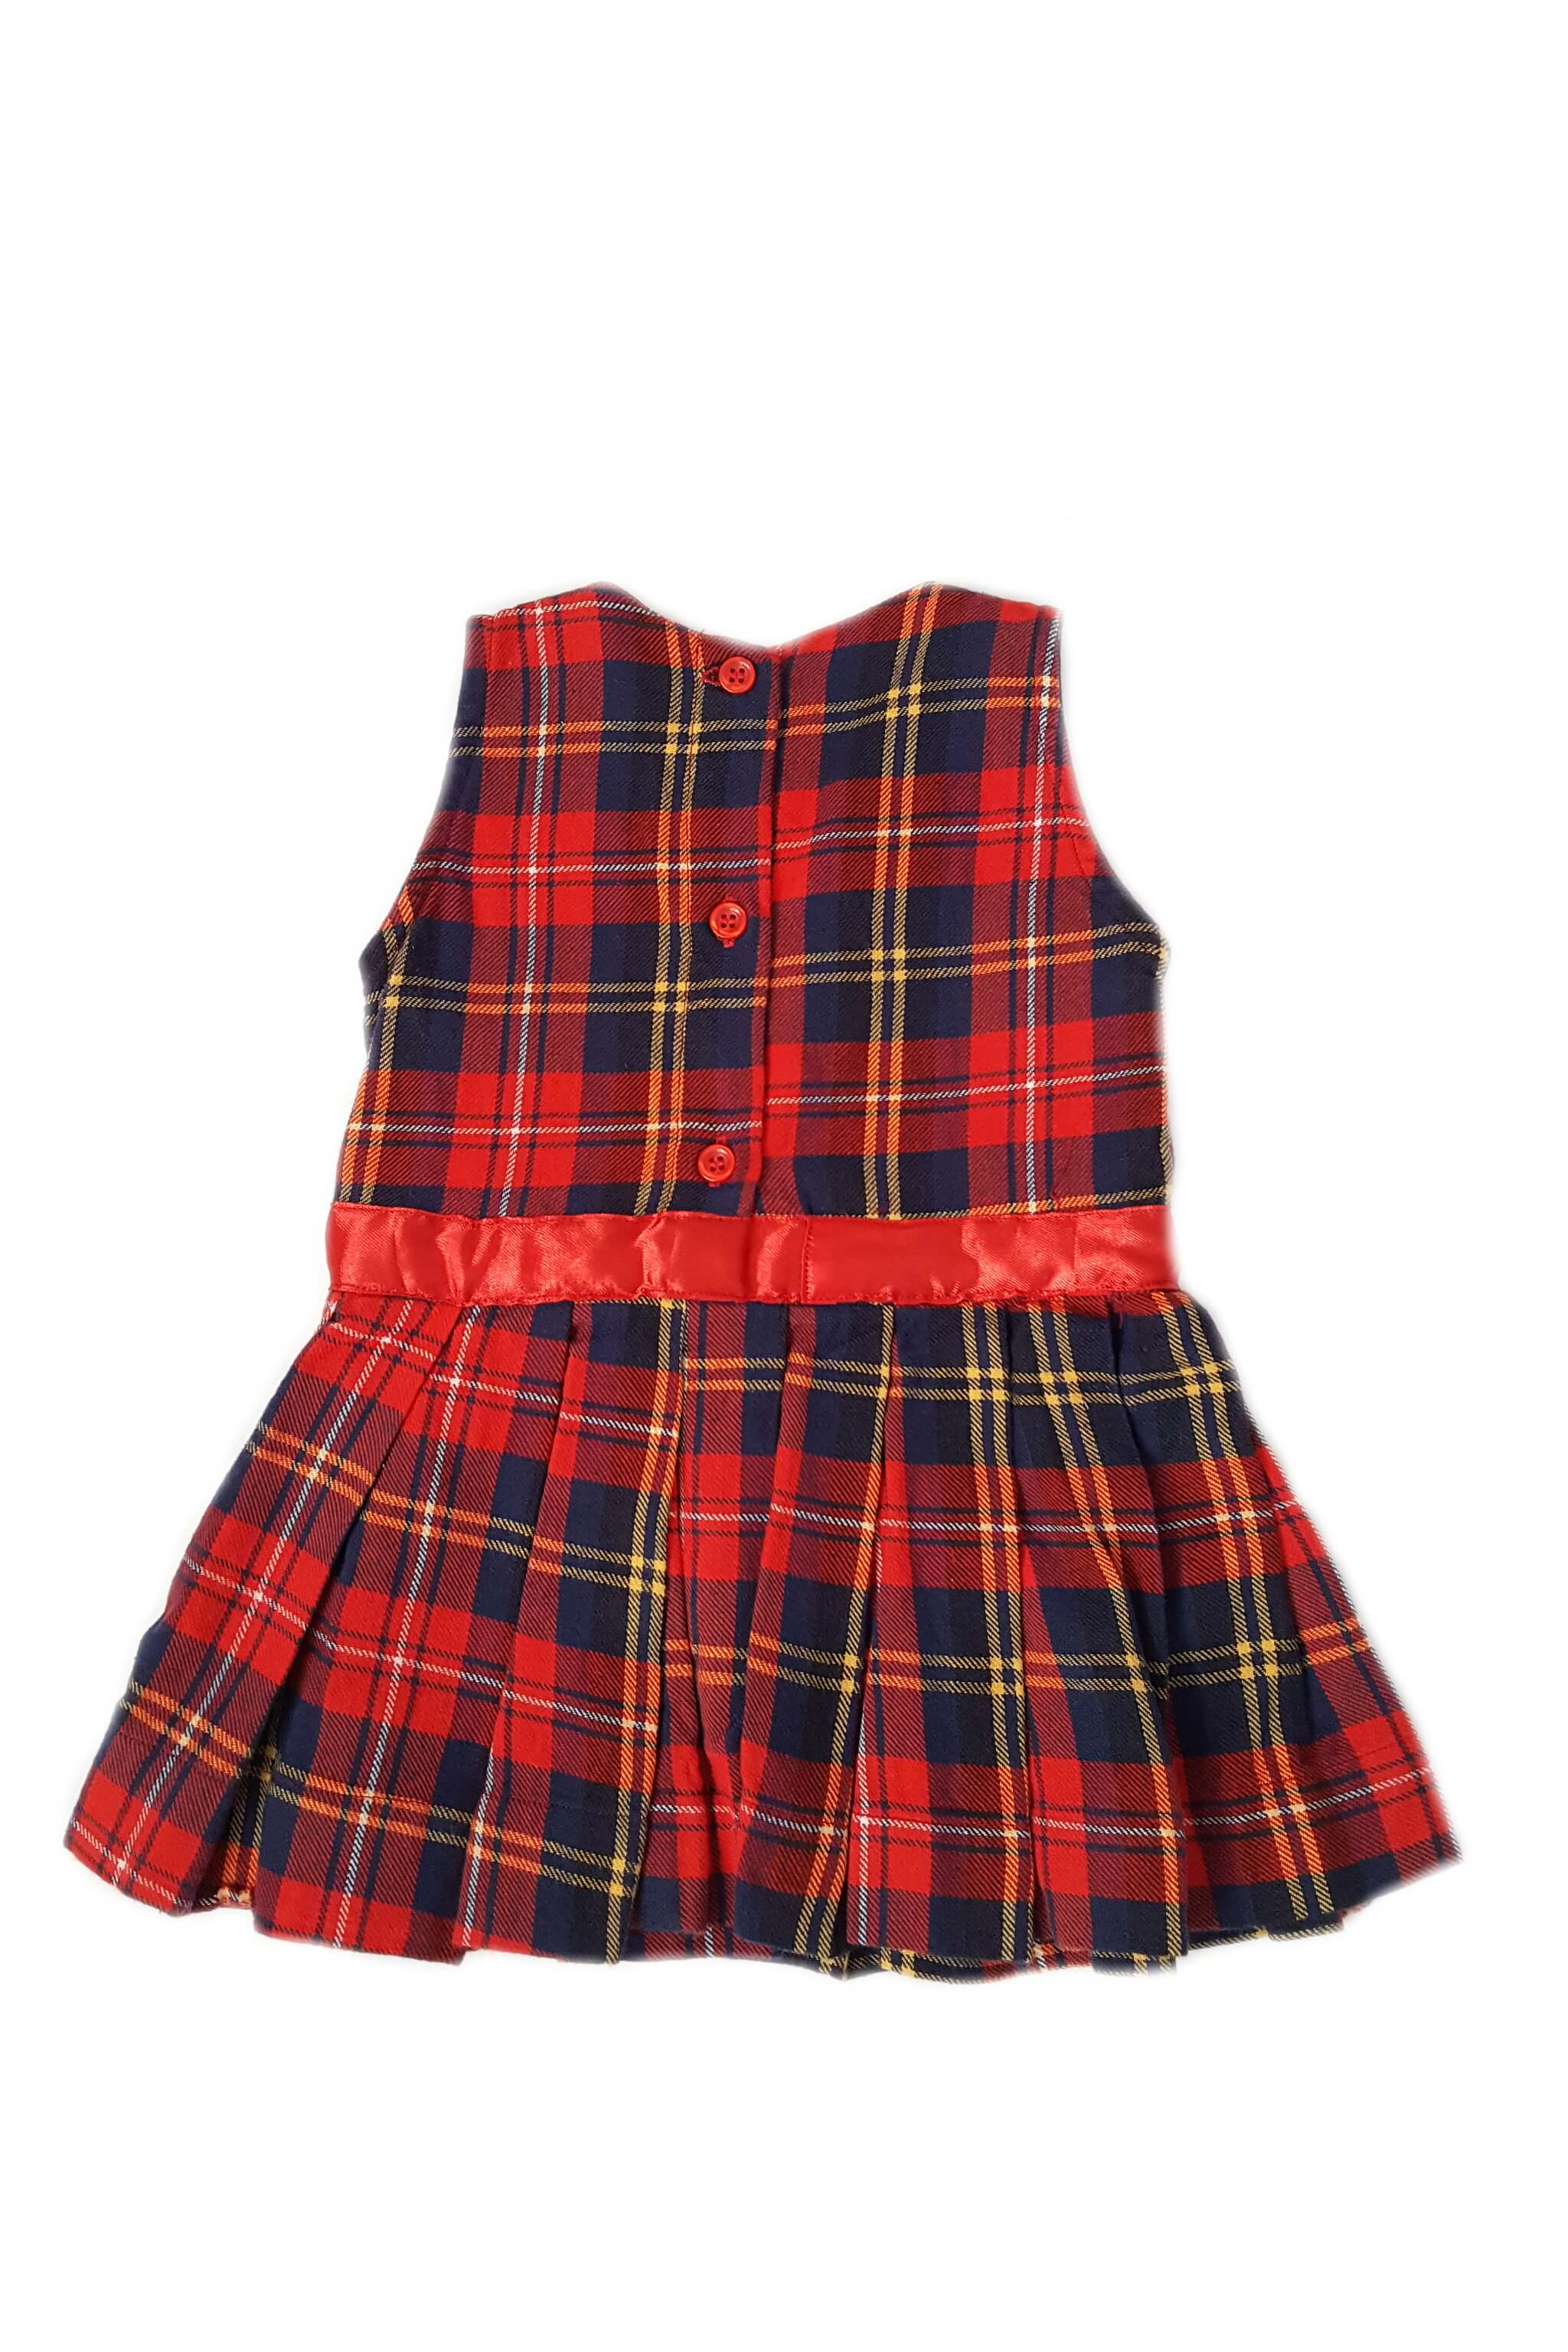 Back of vintage style tartan baby girl's sleeveless dress with box pleats and button back